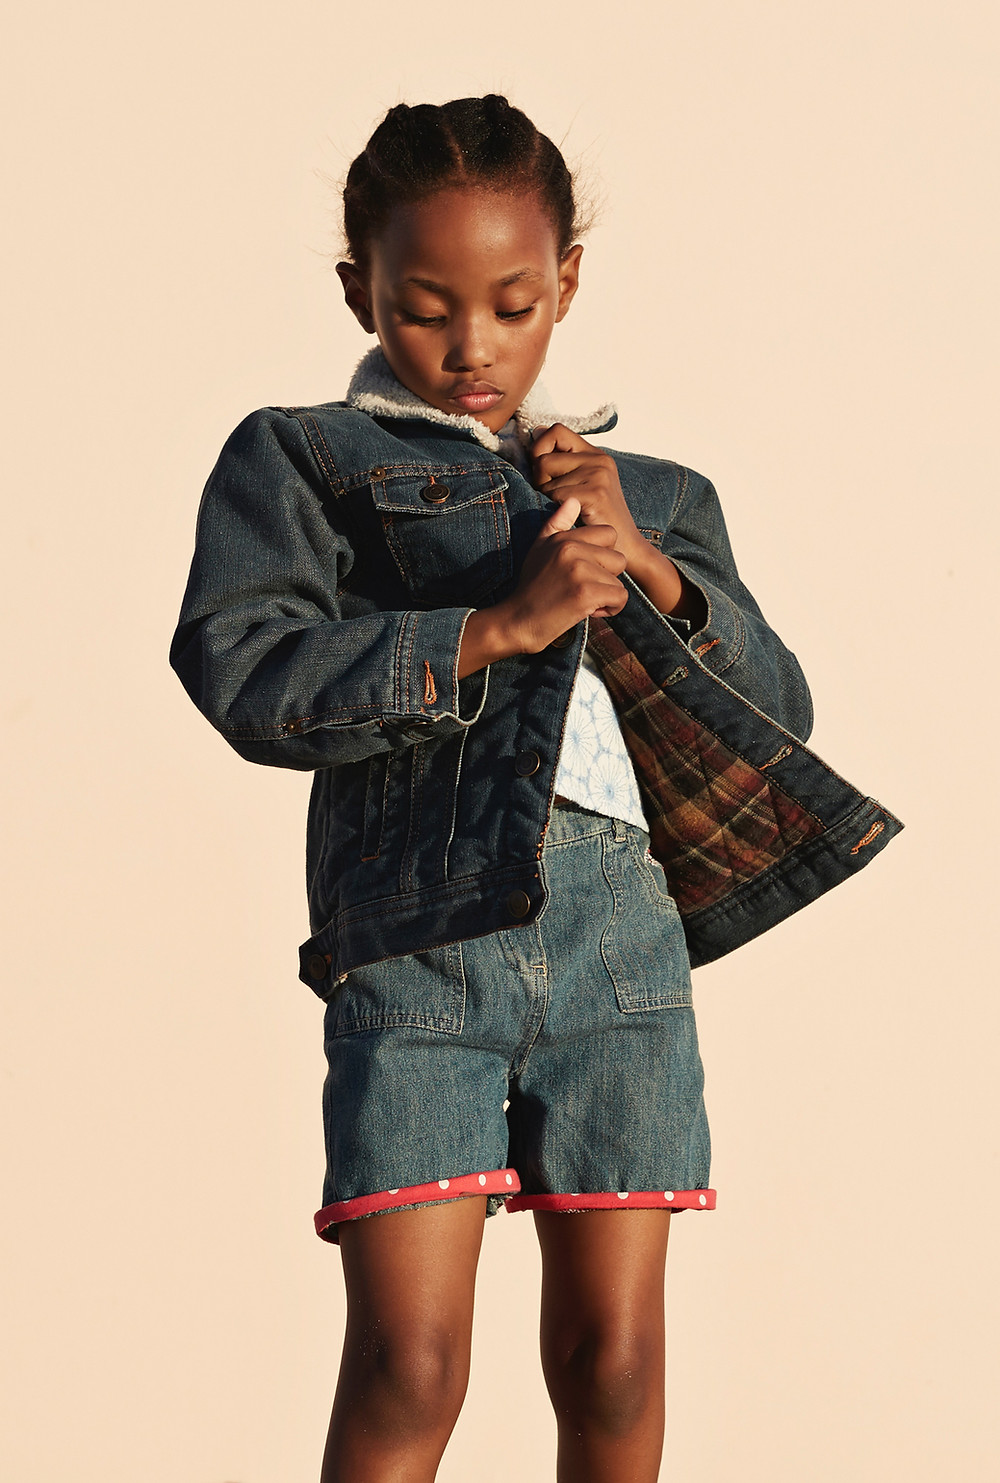 black child model wearing denim jacket and shorts